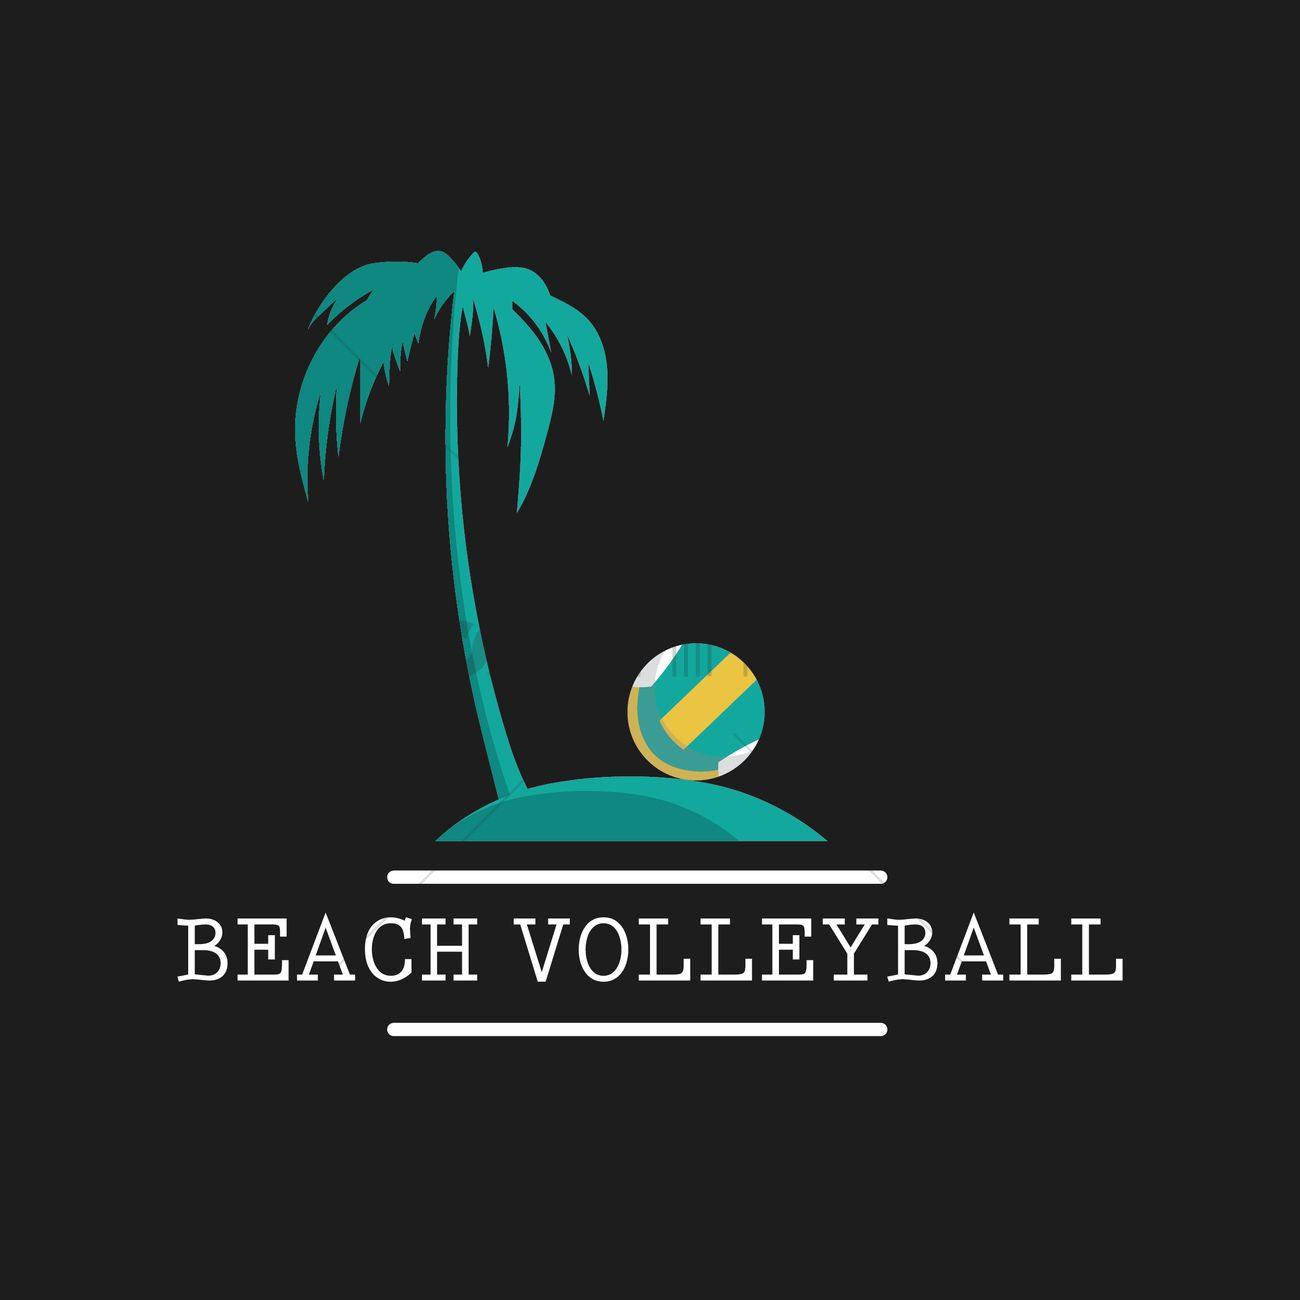 beach volleyball wallpaper vector graphic